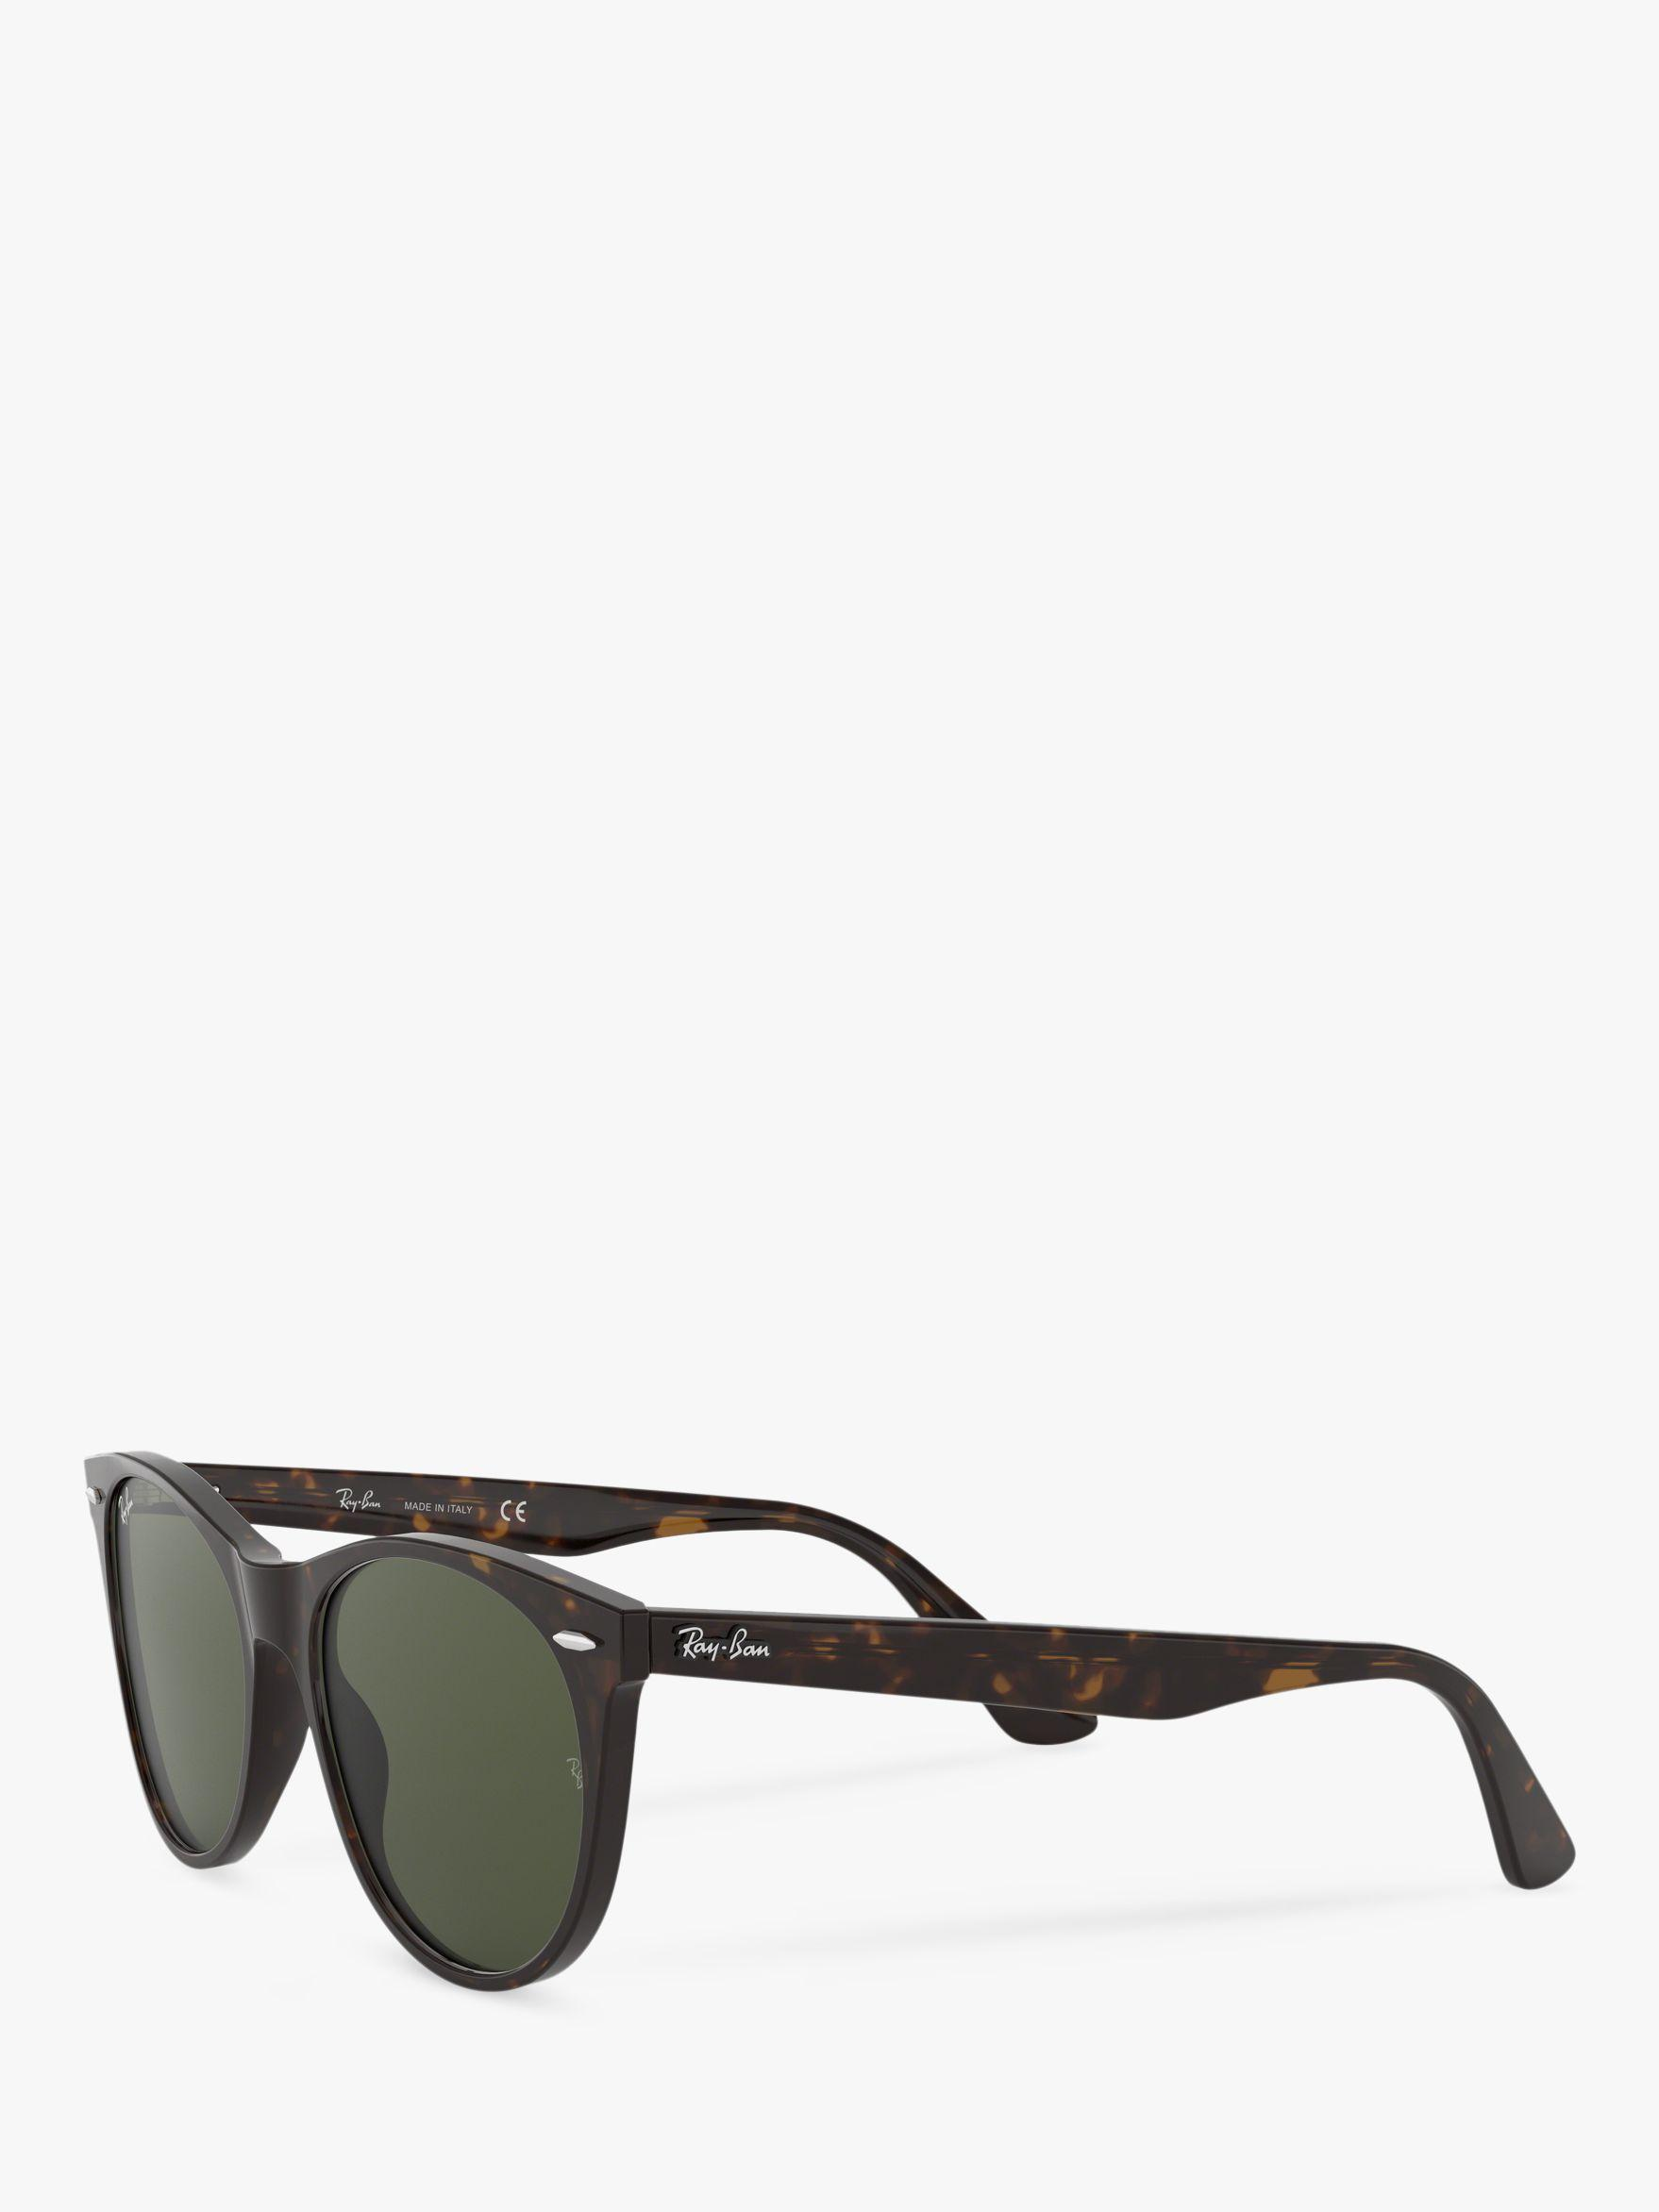 f3a8dfc2a7 Ray-Ban Rb2185 Women s Wayfarer Ii Evolve Sunglasses in Green - Lyst